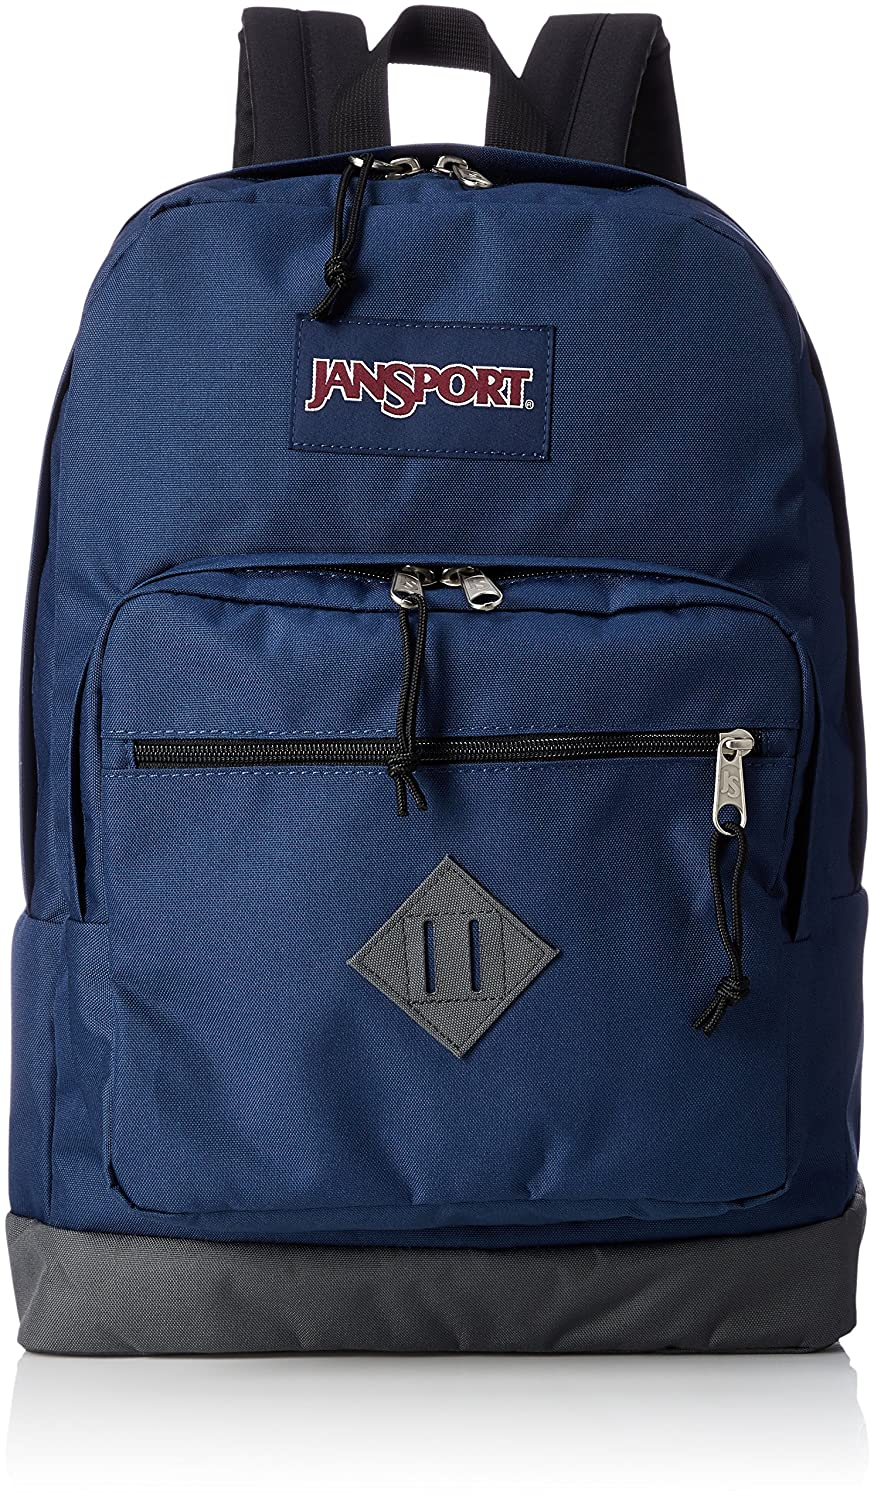 JanSport City Scout Laptop Backpack - Navy  Amazon.ca  Sports   Outdoors d43a26c11dd